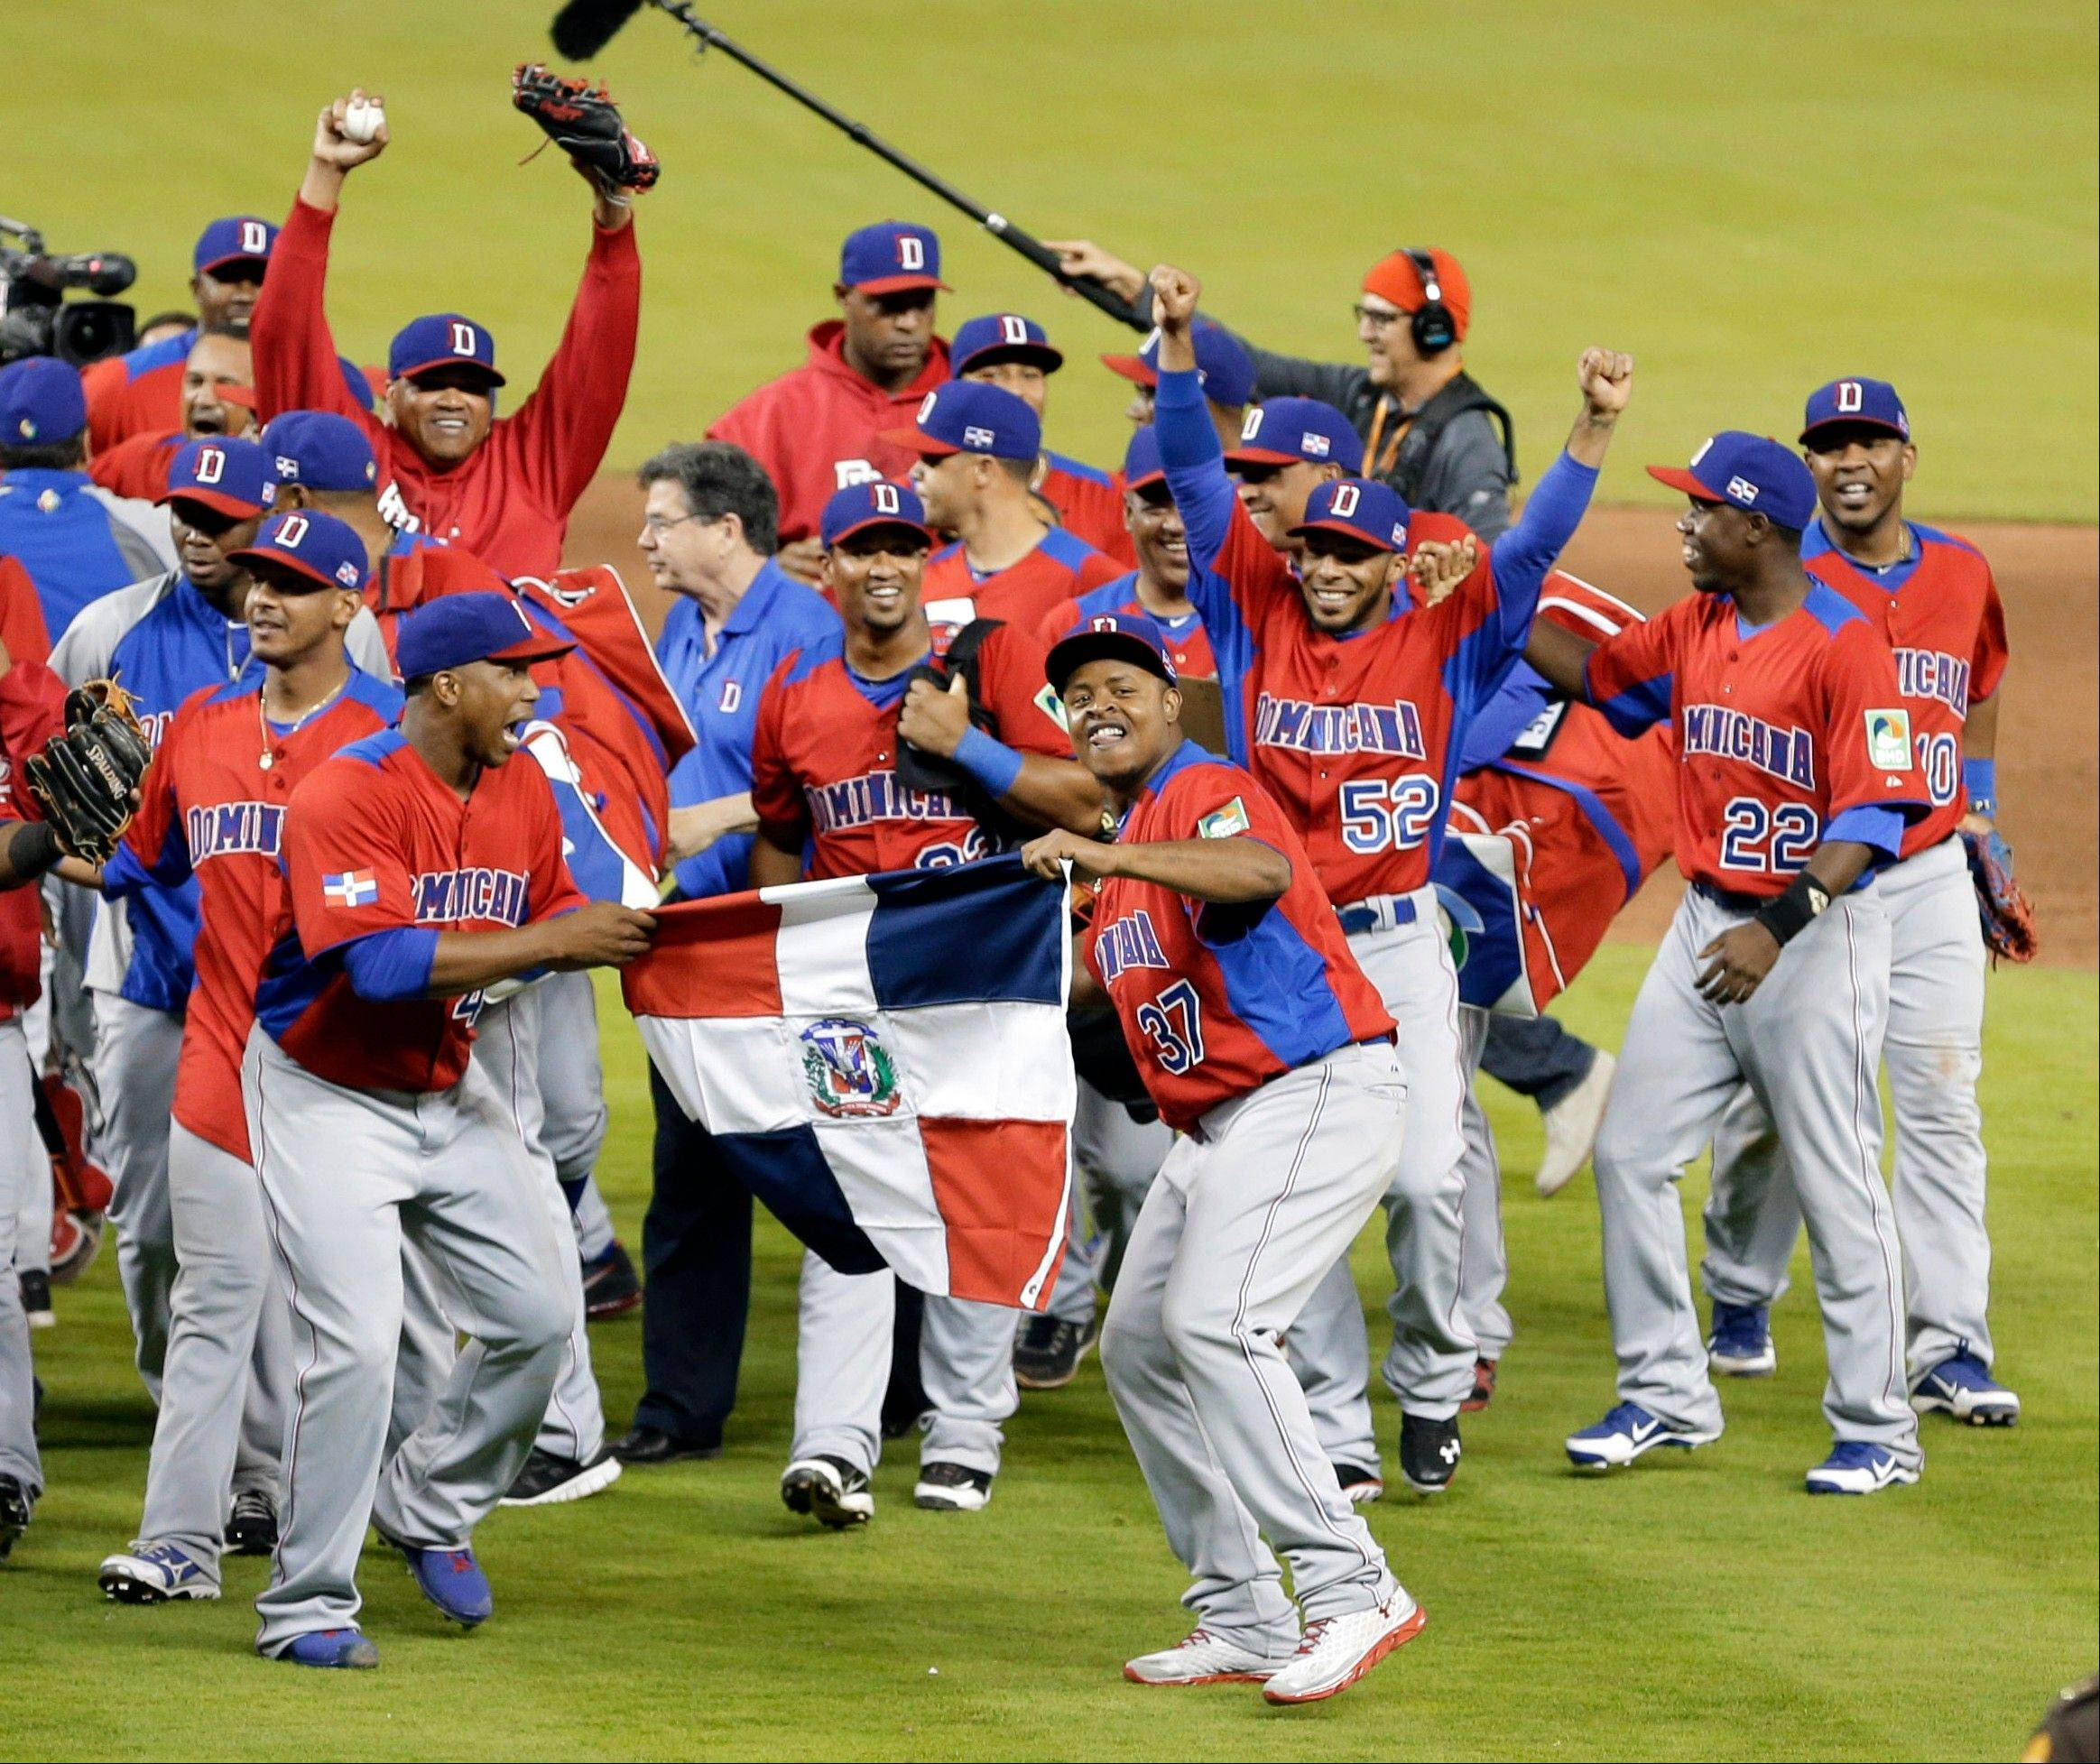 Dominican Republic players celebrate their 3-1 win over the United States during a second-round game of the World Baseball Classic in Miami, Thursday, March 14, 2013.